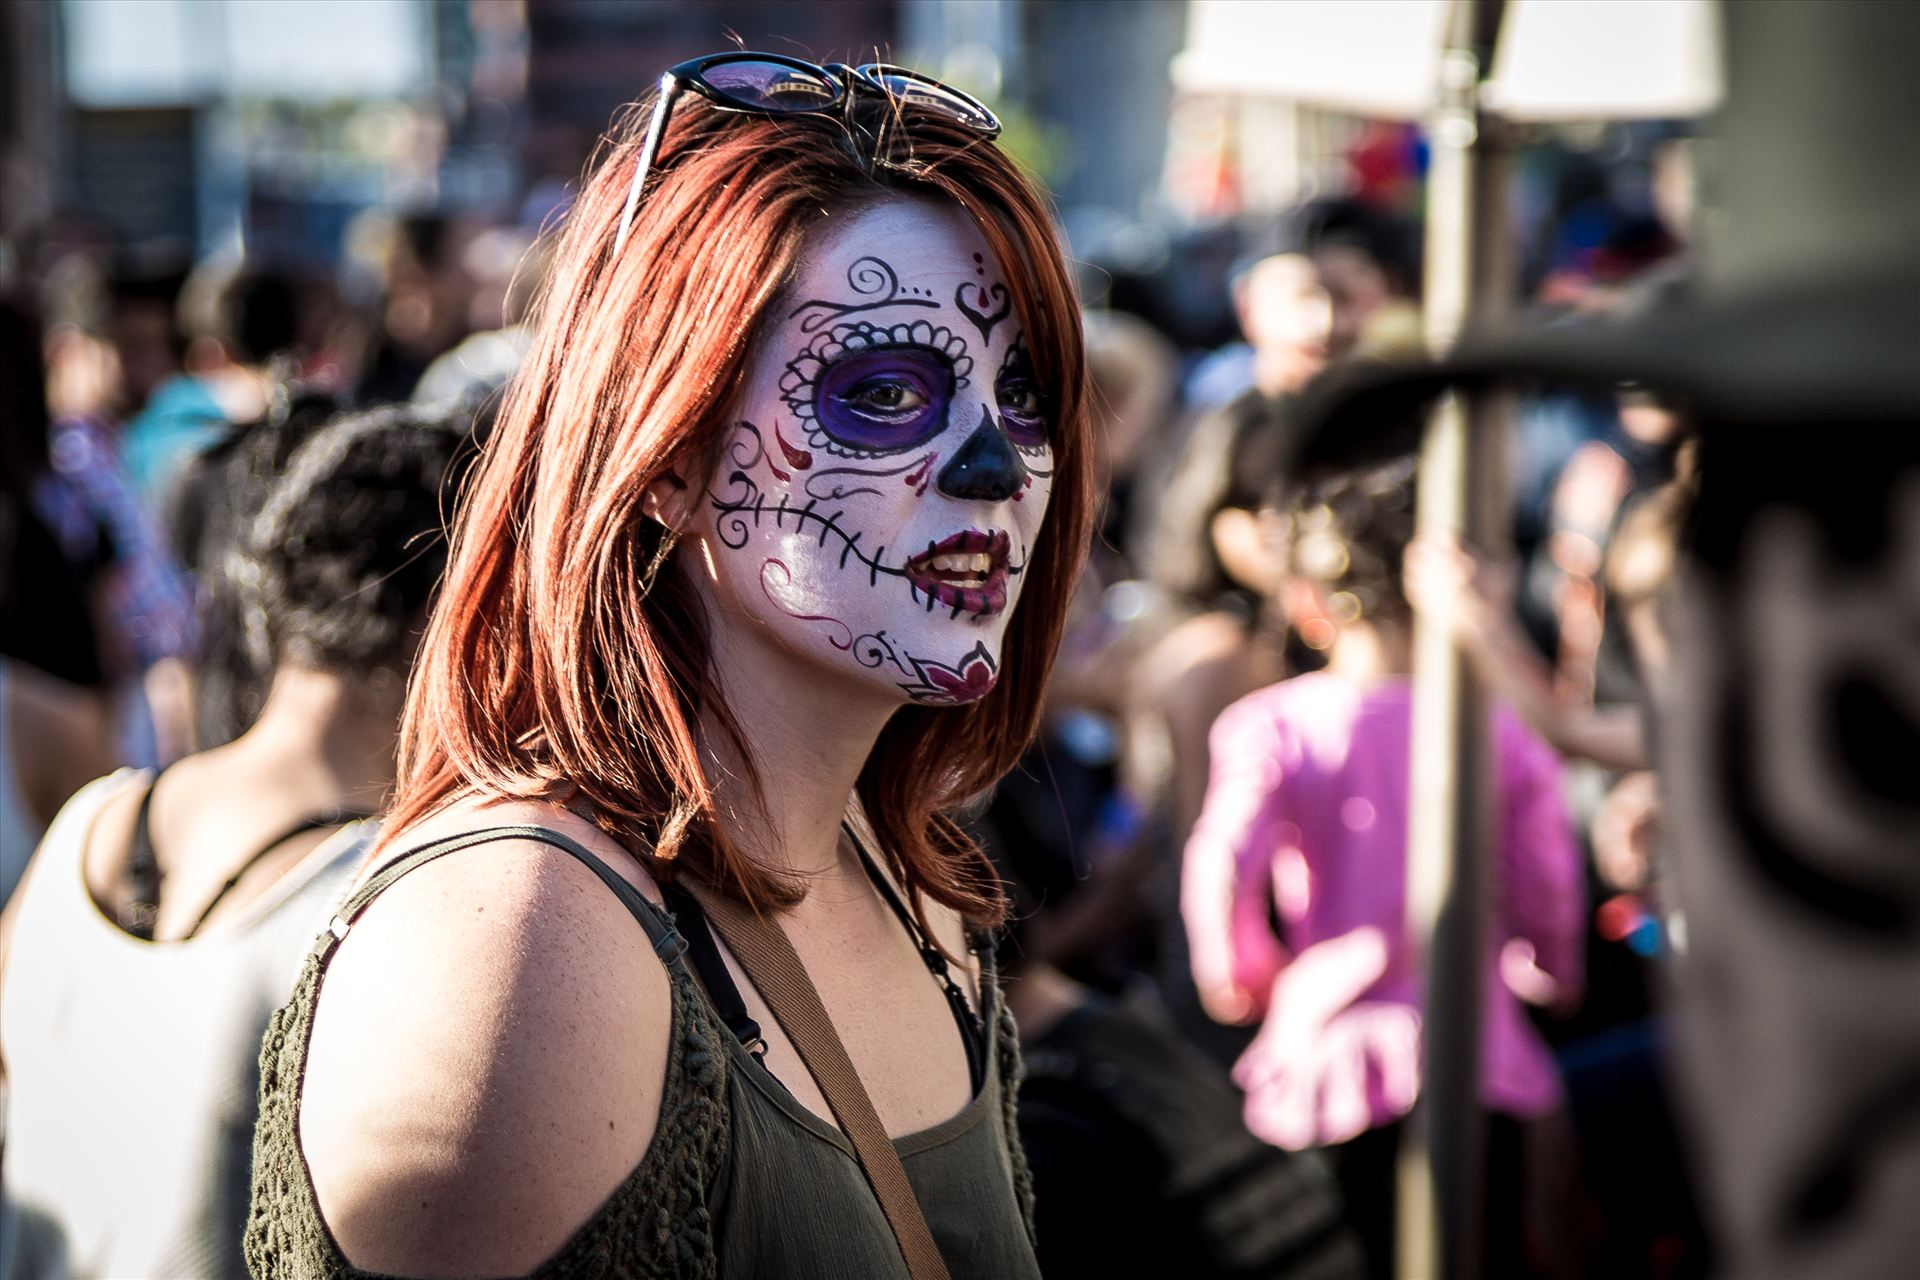 Denver Zombie Crawl 2015 21 - A redhead with day of the dead makeup at the Denver Zombie Crawl 2015 by D Scott Smith